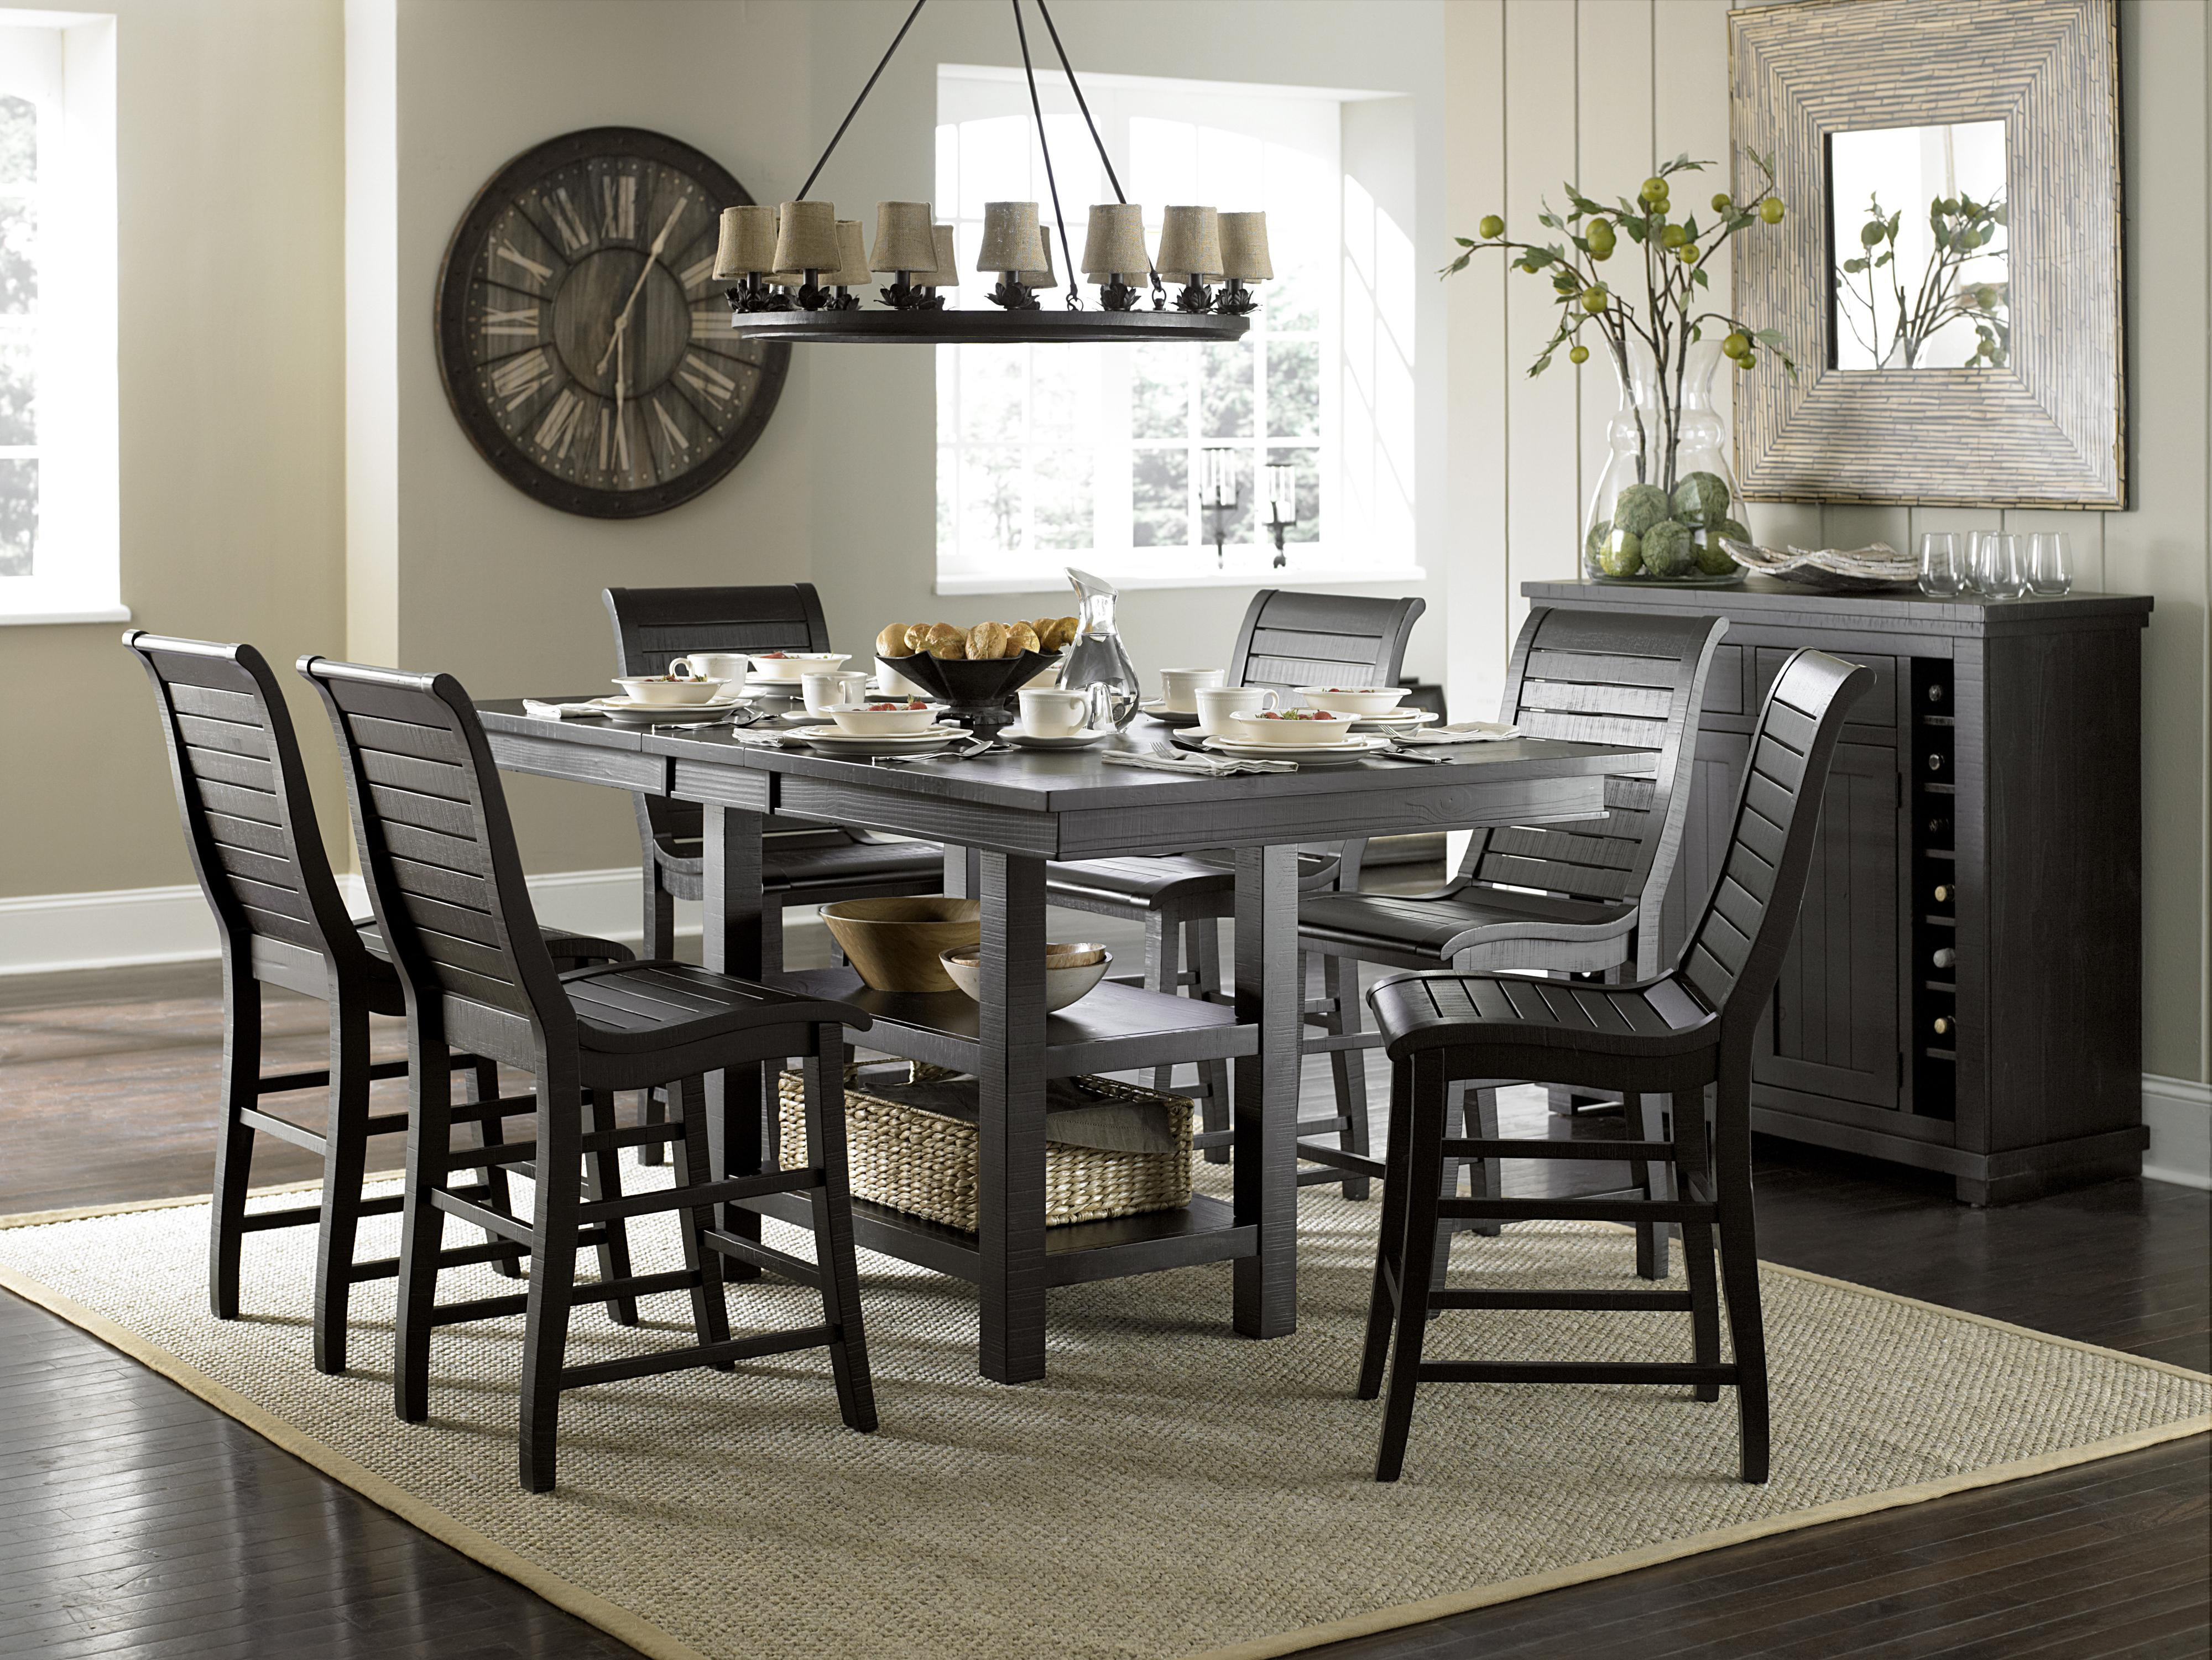 willow dining room | Delivery Estimates | Northeast Factory Direct - Cleveland ...